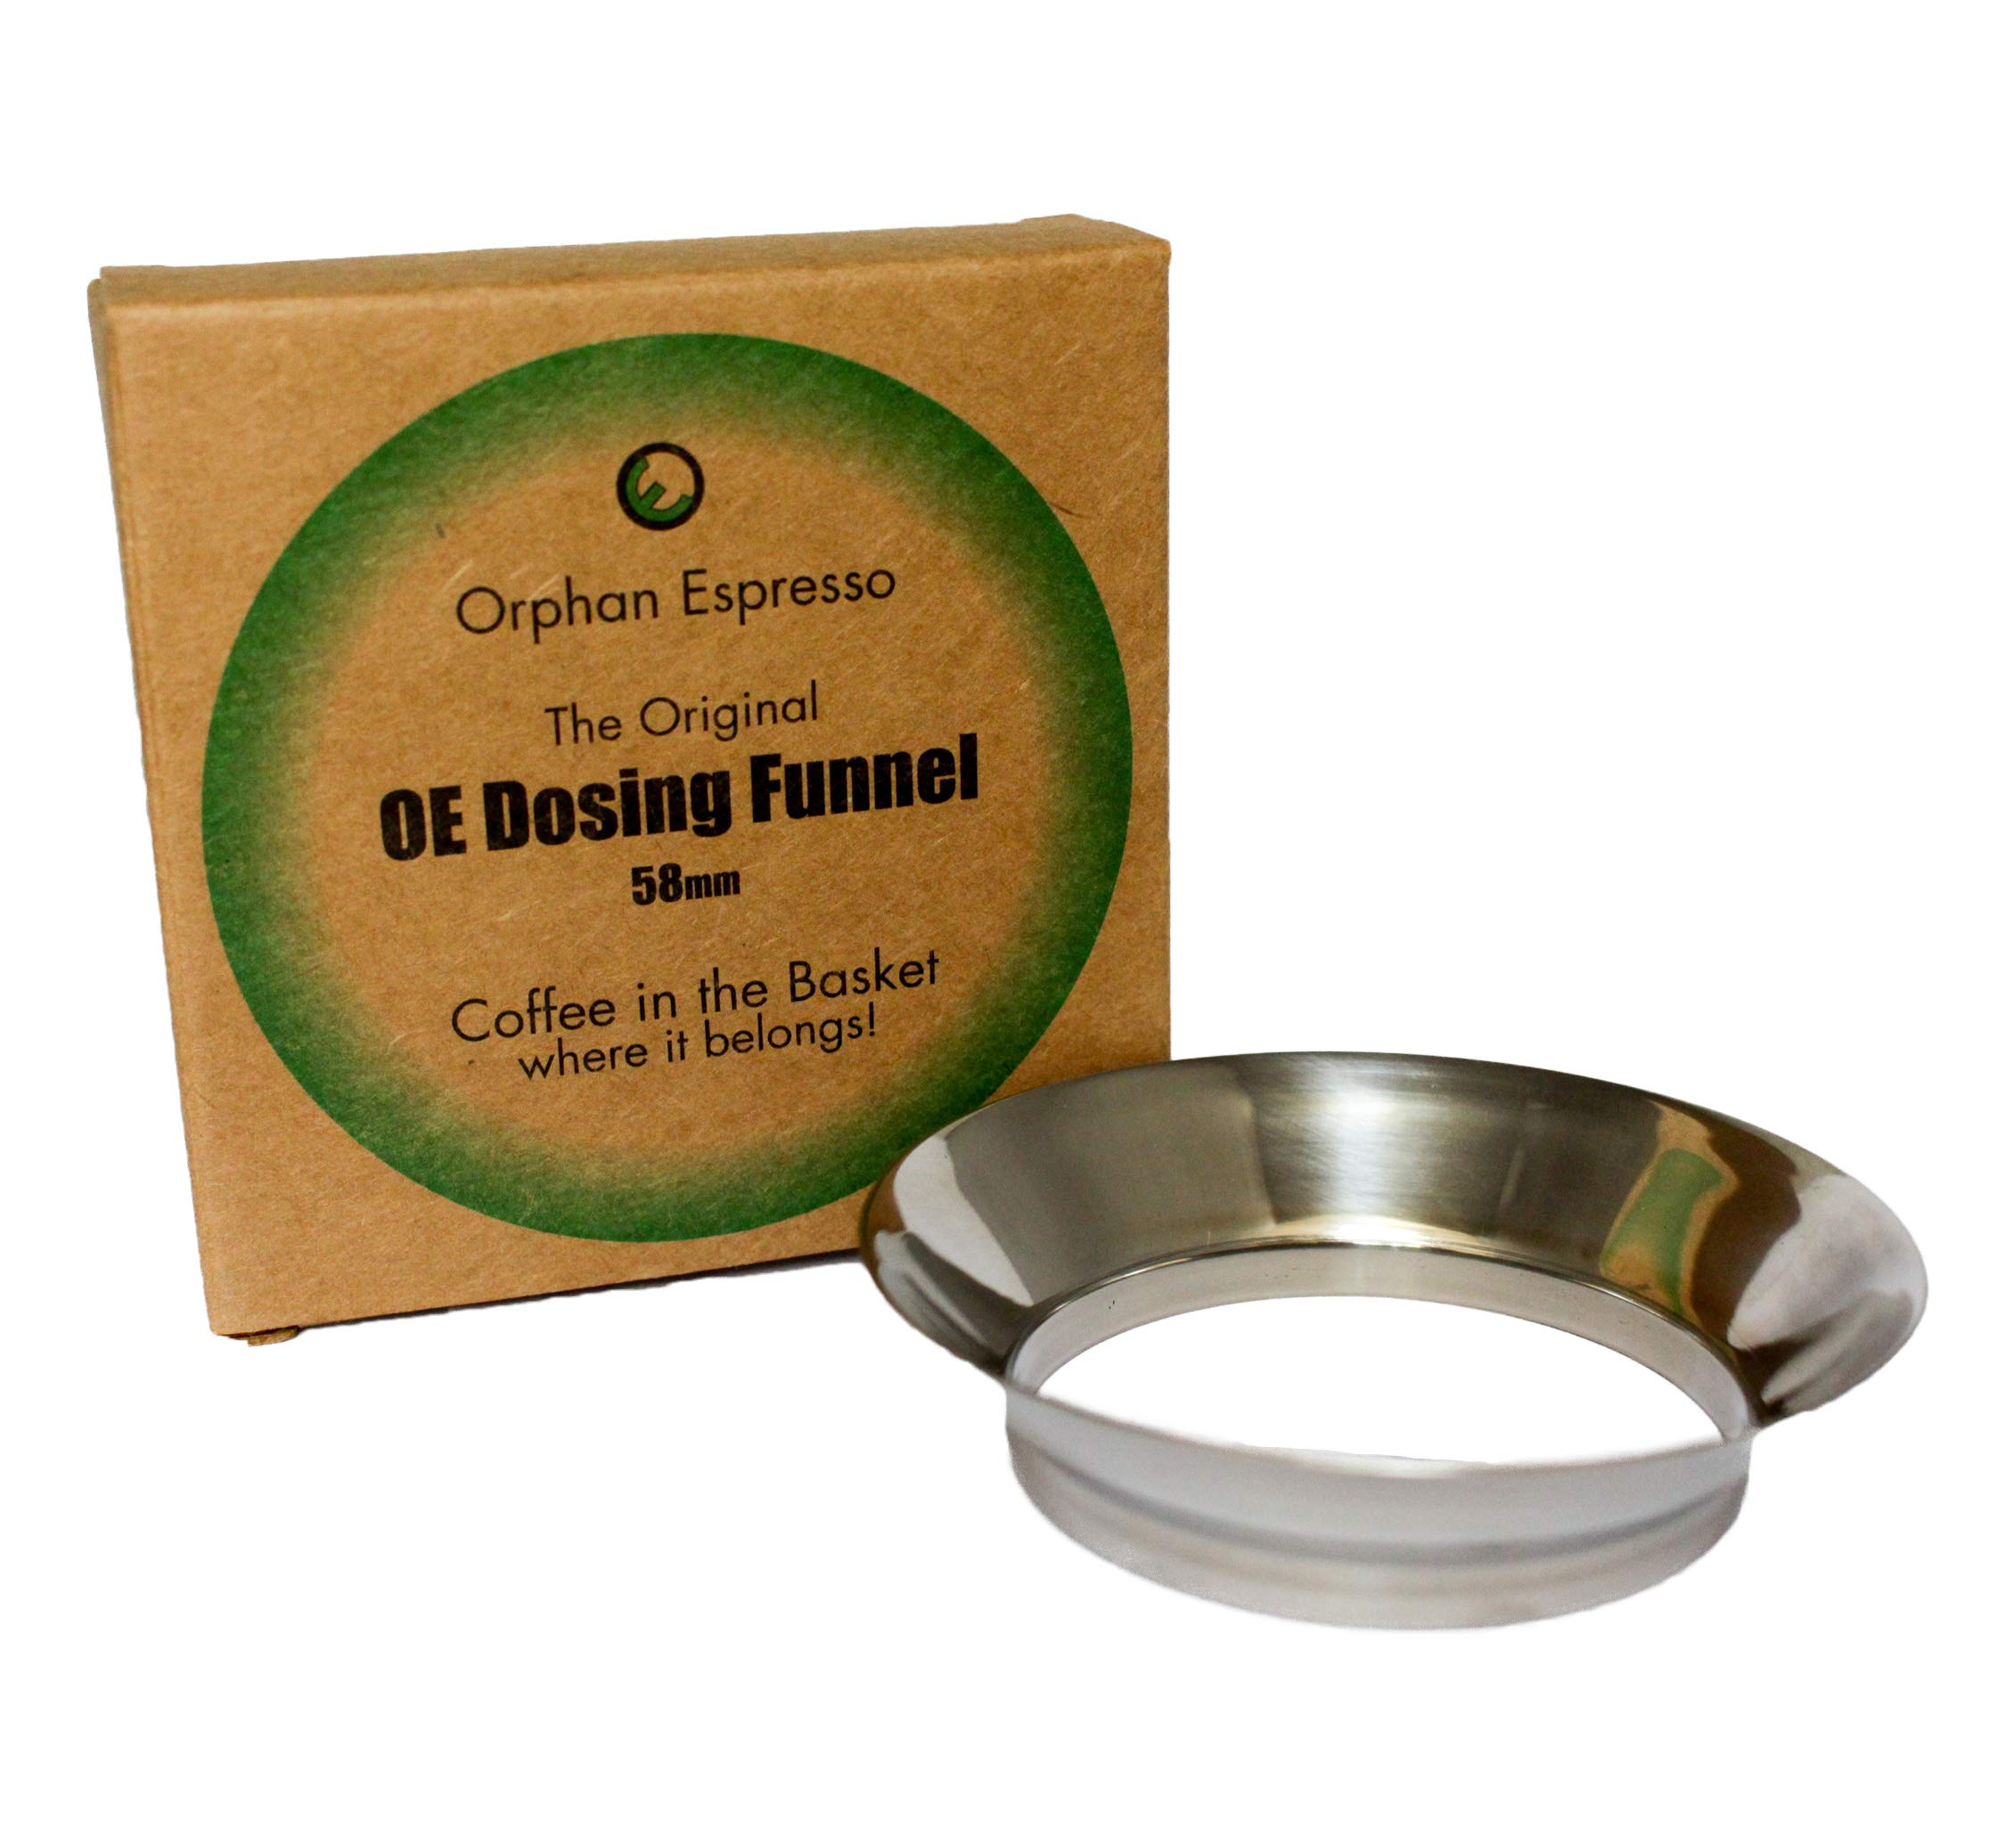 Stainless Steel Dosing Funnel | 58mm | For Commercial Espresso Machine Portafilters